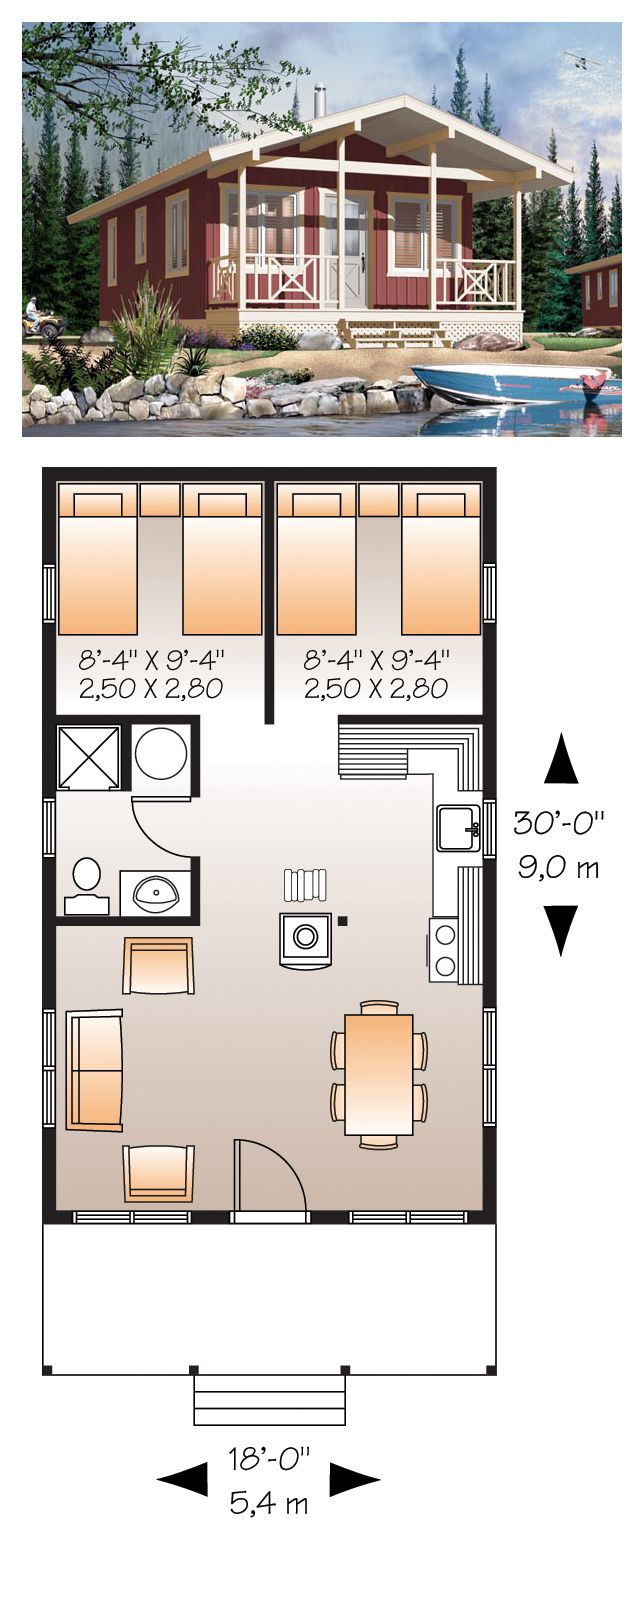 Small House Plans With Loft Bedroom 1000 Ideas About Small Cabin Plans On Pinterest Small Home